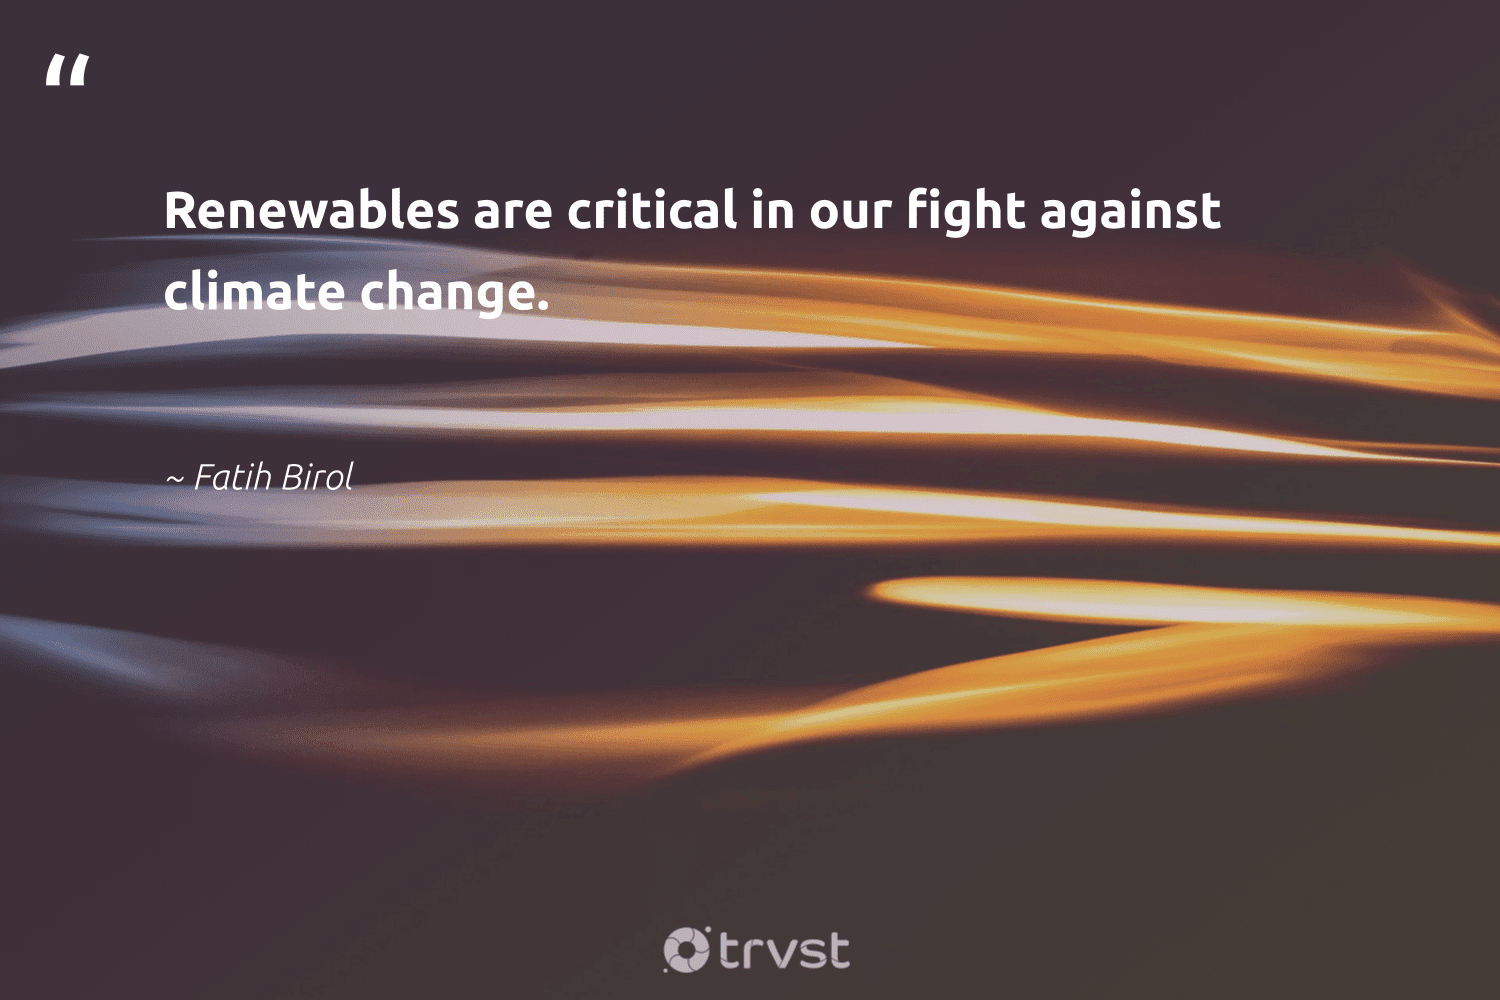 """""""Renewables are critical in our fight against climate change.""""  - Fatih Birol #trvst #quotes #climatechange #renewables #climate #actonclimate #affordable #livegreen #climatefight #socialimpact #climatechangeisreal #cleanenergy"""